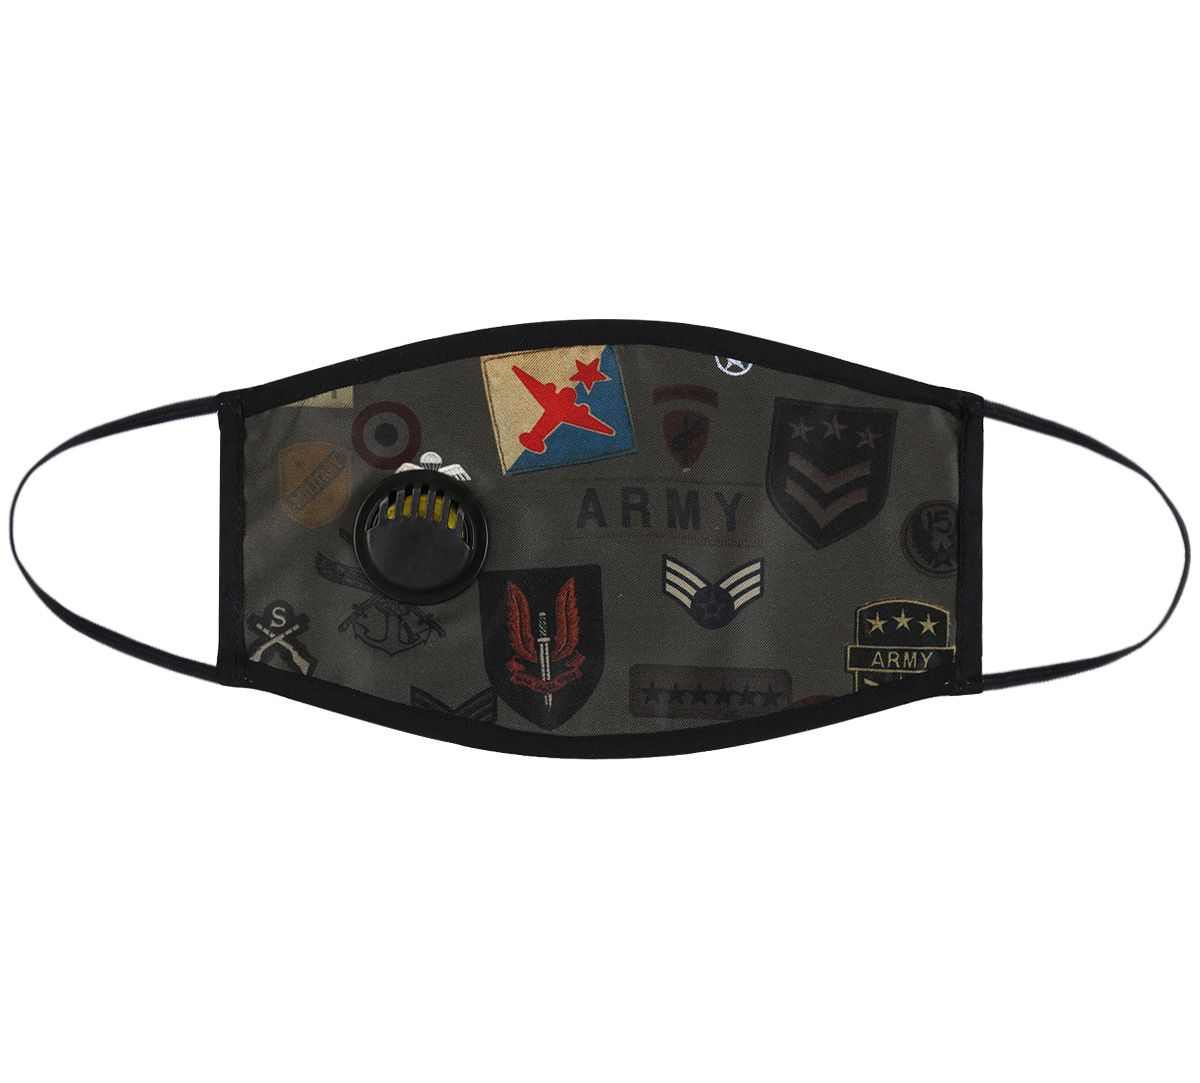 India Circus Army Badges Rush Protective Face Mask with Breathing Valve